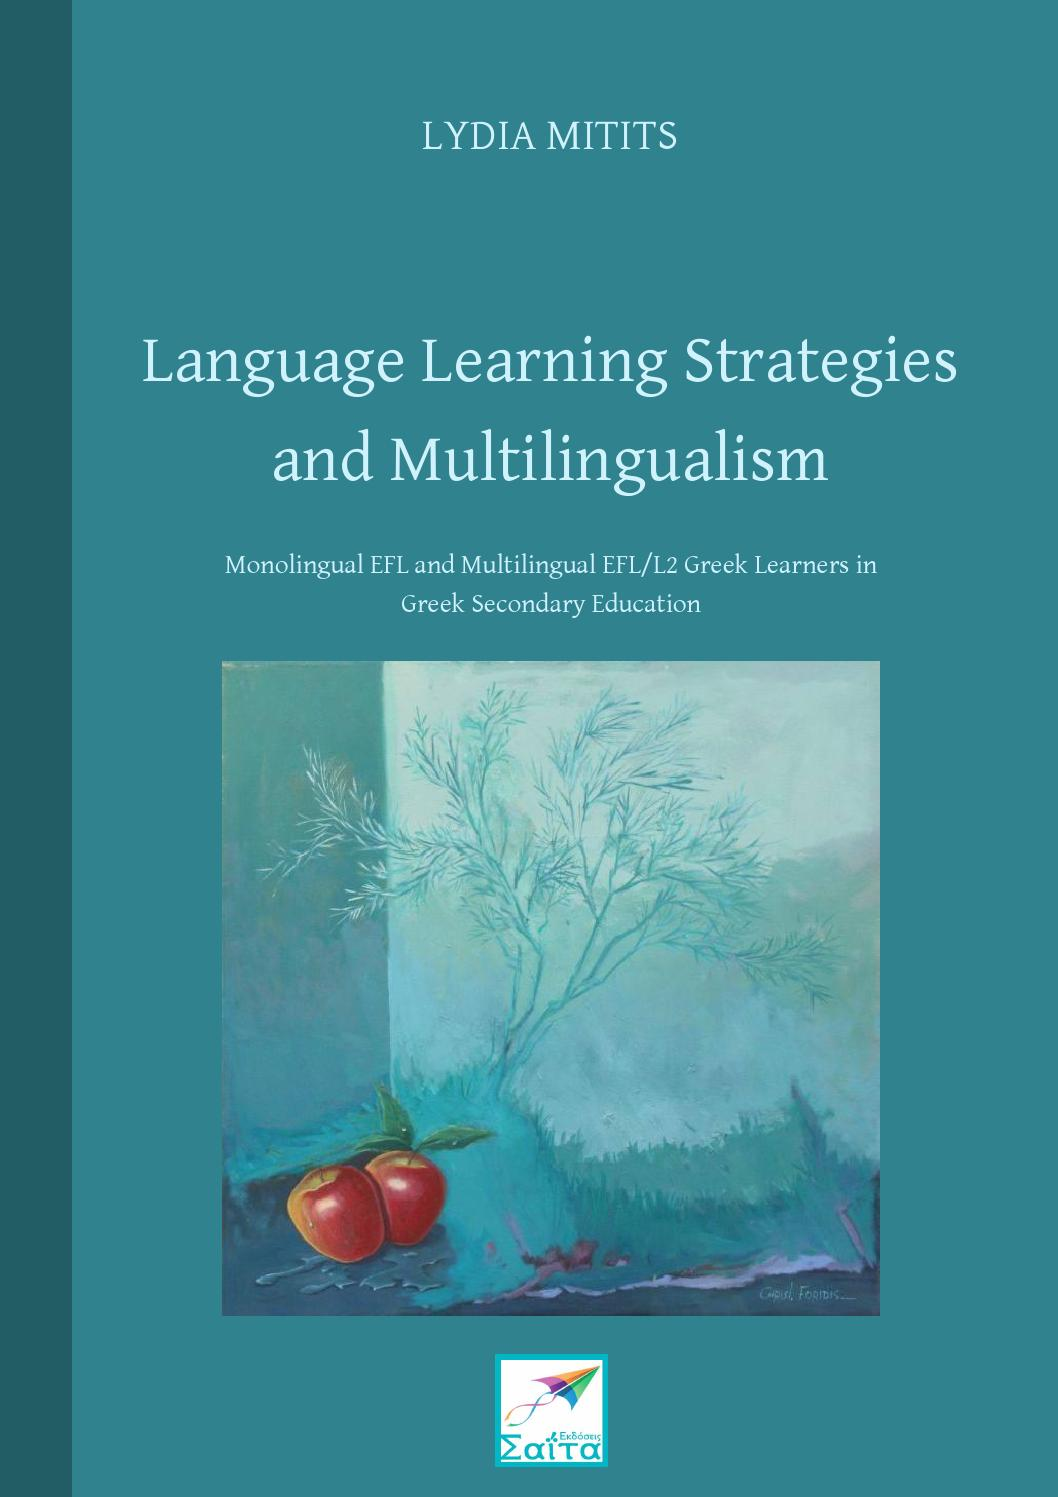 Phd Thesis On Vocabulary Learning Strategies